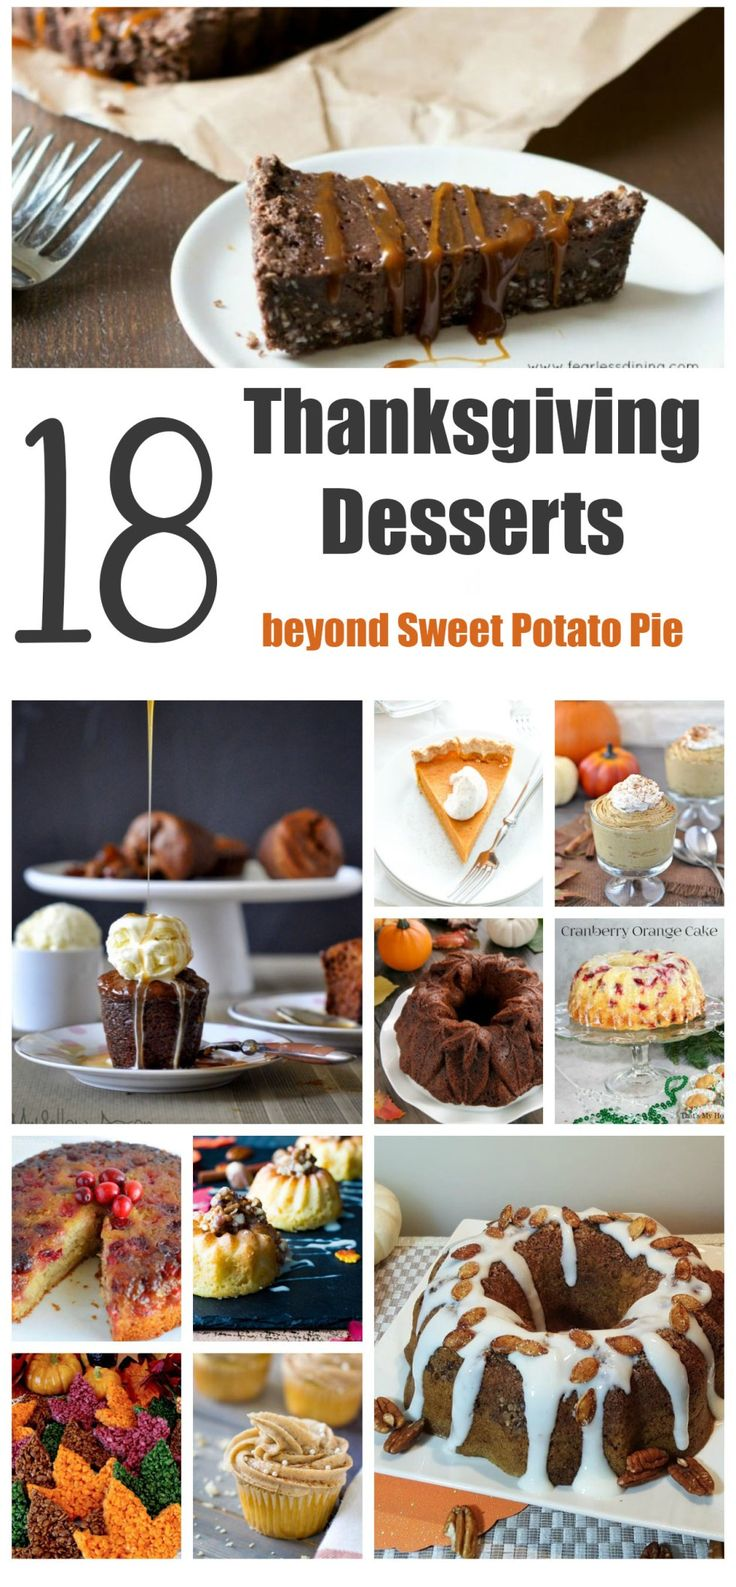 Don't let the turkey steal the thunder this #Thanksgiving, offer up these #mouthwatering Thanksgiving #desserts for a #delicious twist